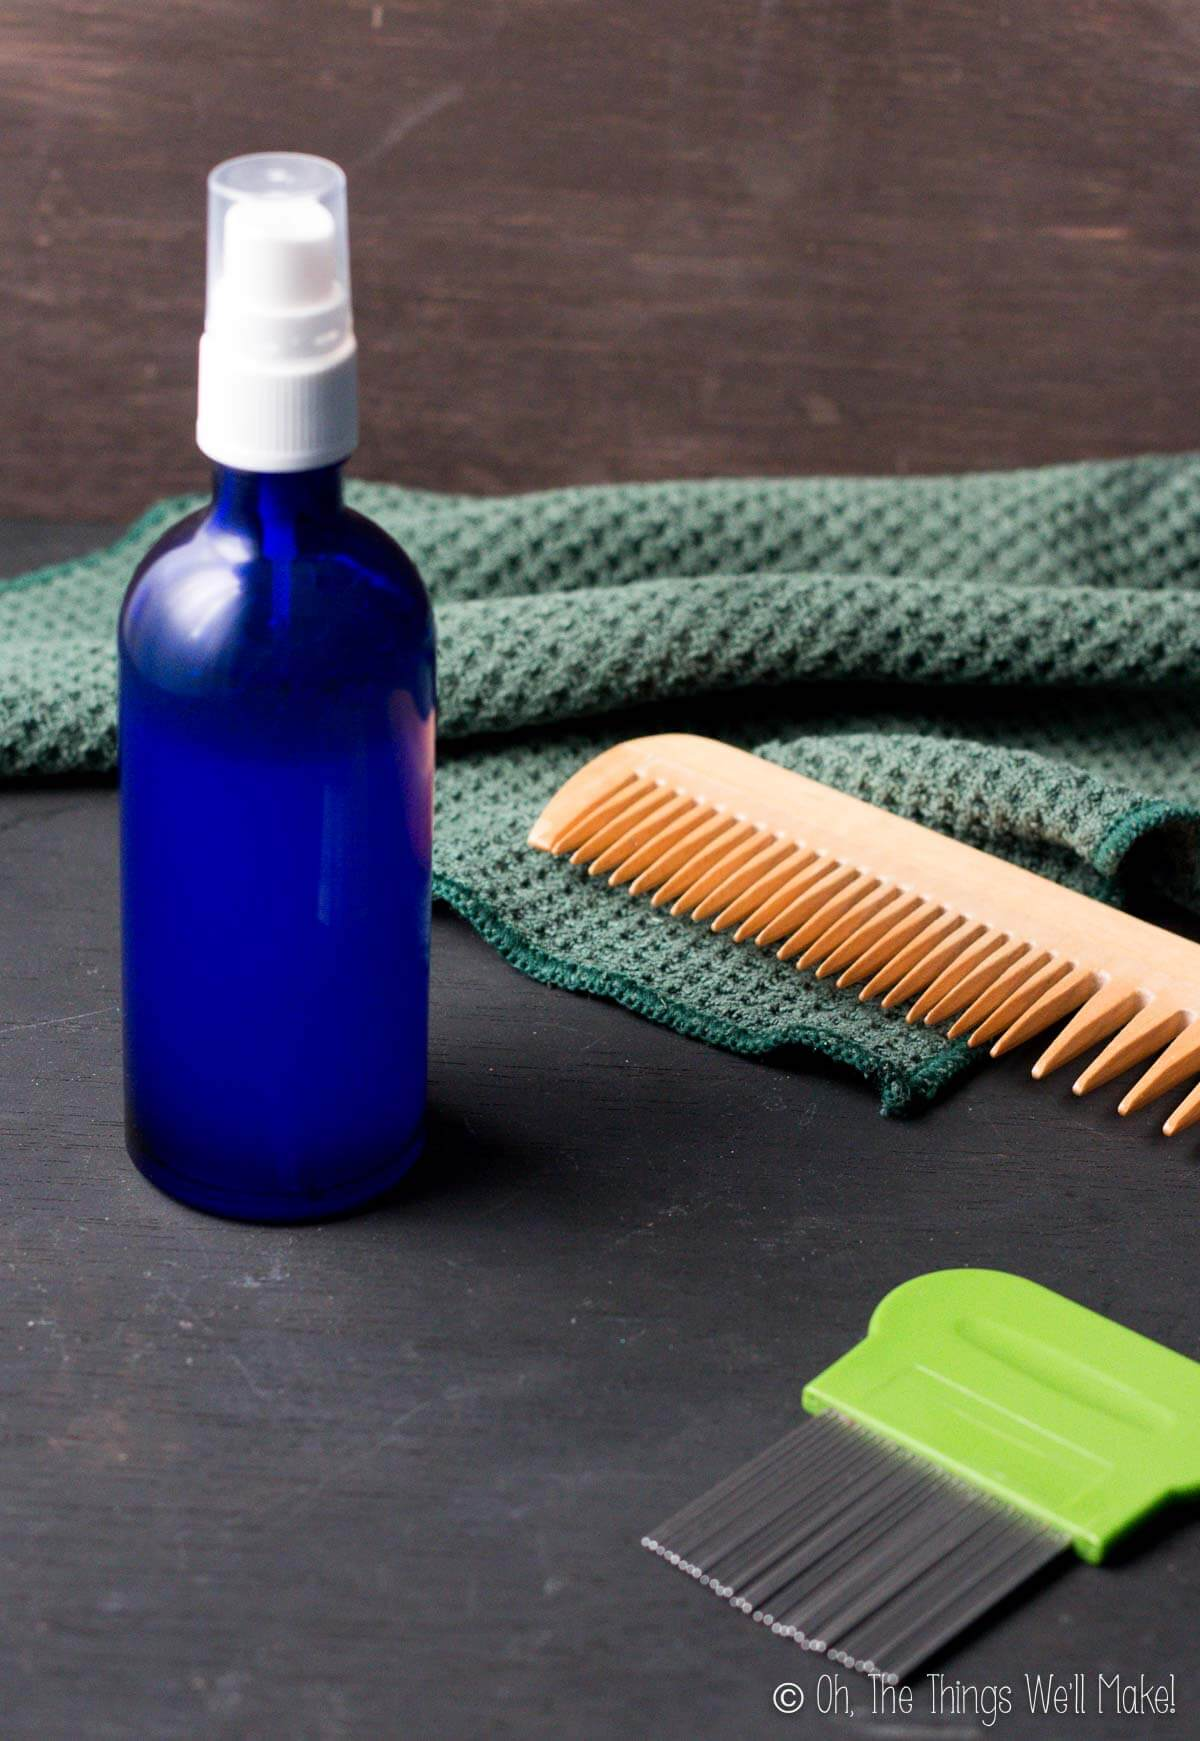 A blue bottle filled with a homemade lice repellent next to two combs and a washcloth